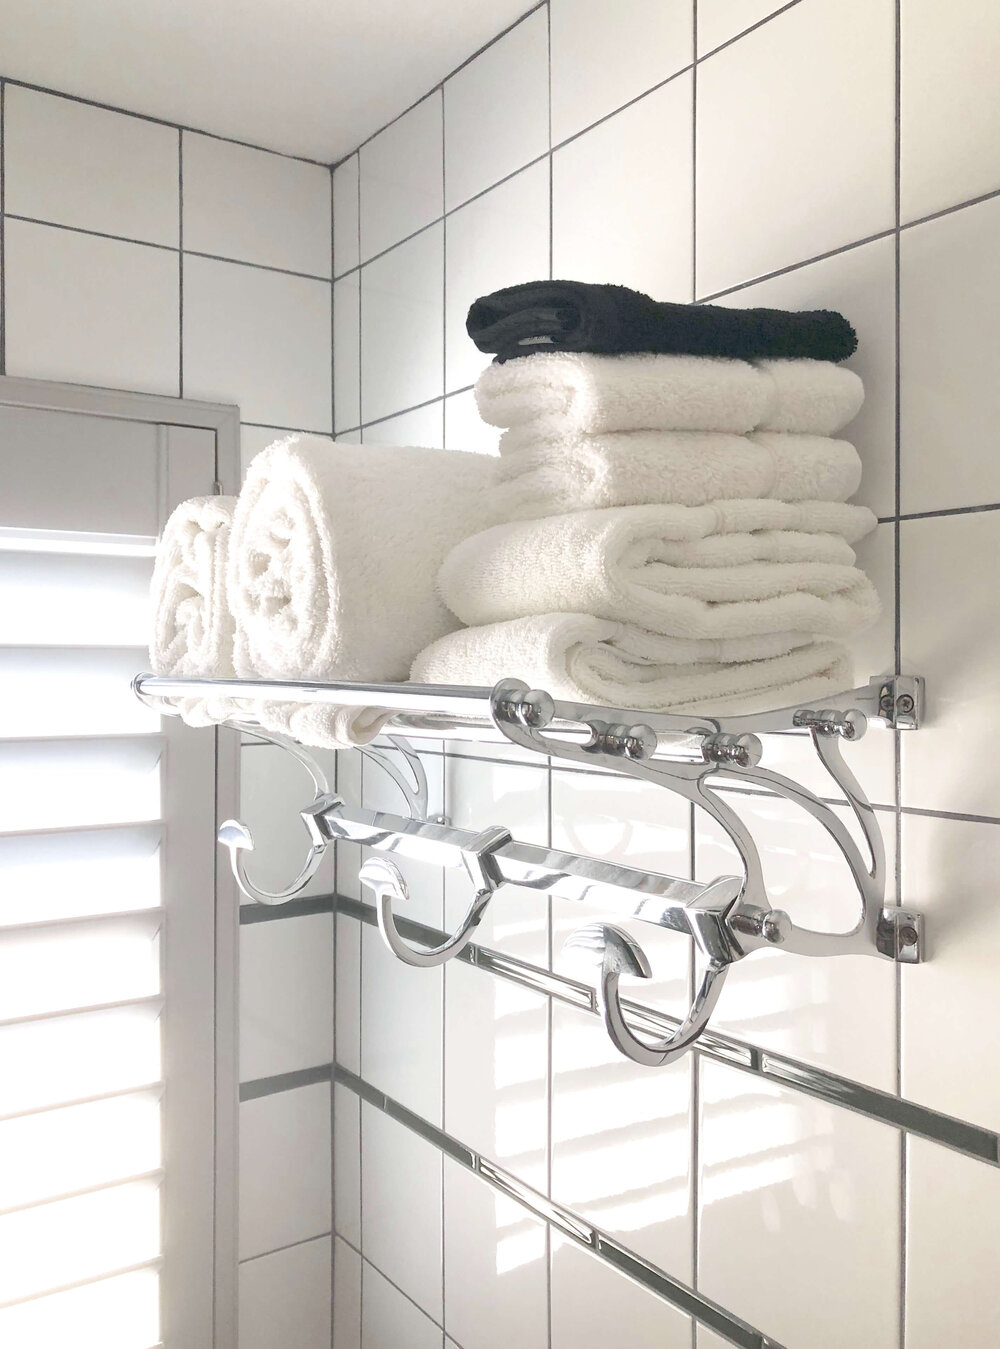 Small Bathroom Design Tips - Hotel bathroom with train rack style towel bar